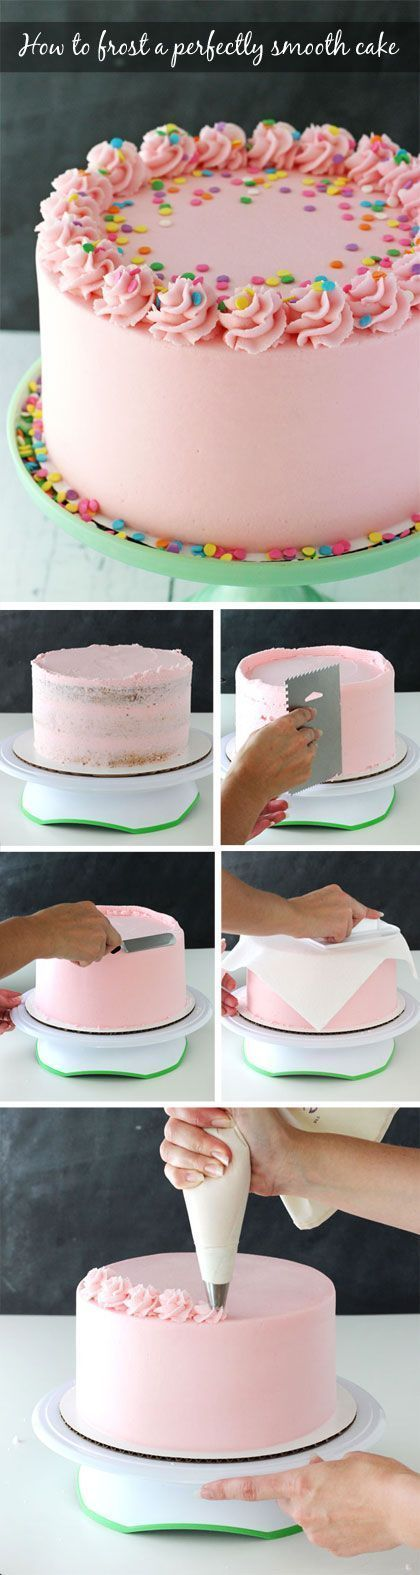 How to frost a smooth cake with buttercream Frosting Smooth and